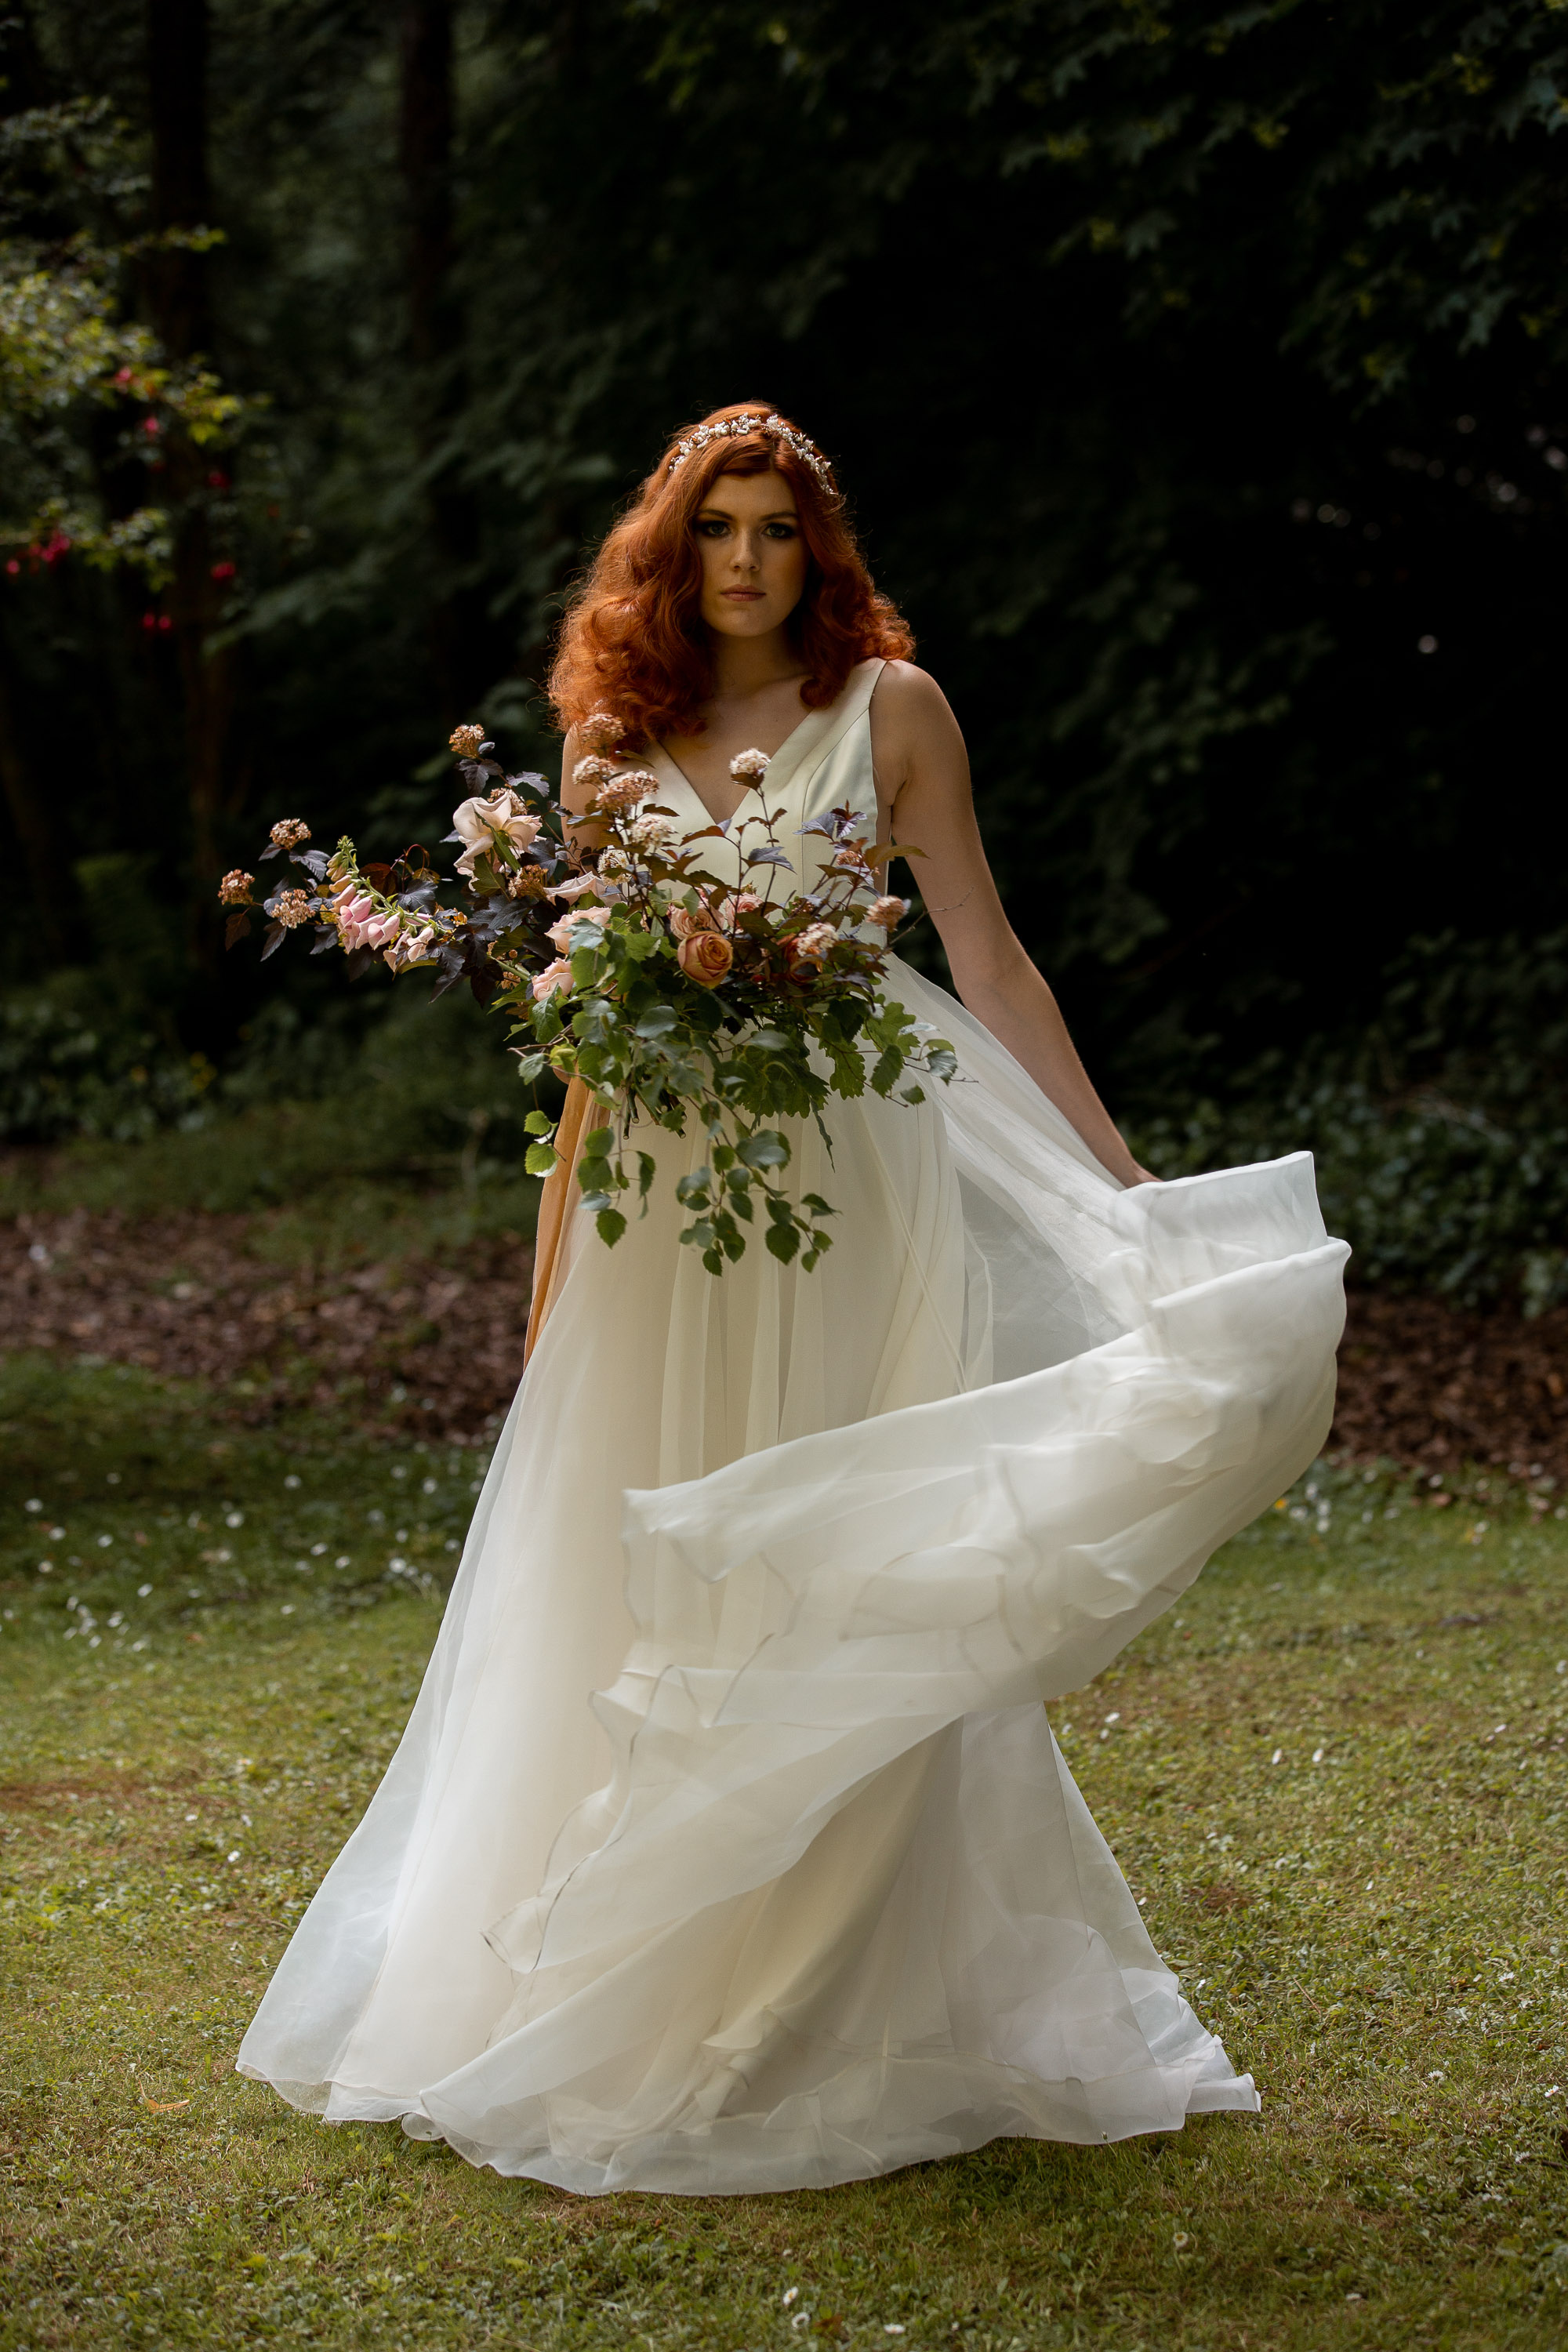 Victoriana-Flora-wedding flowers-northern ireland-styled-shoot-inspire-weddings-8.jpg